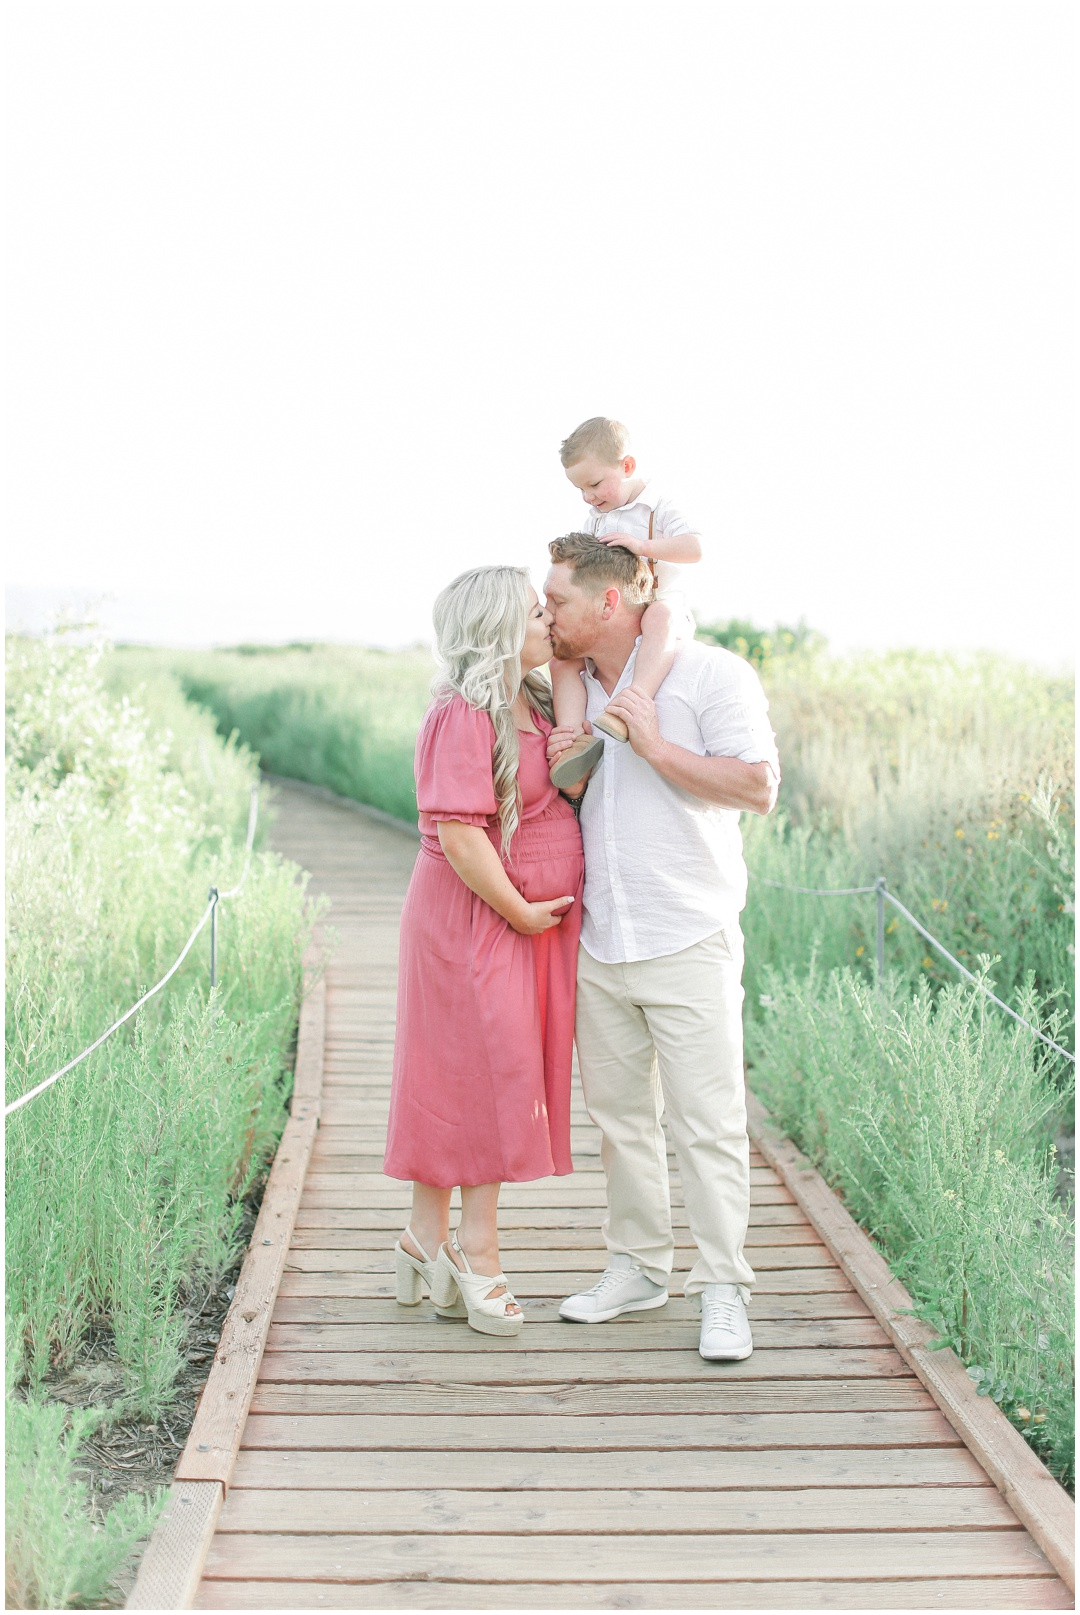 Newport_Beach_Newborn_Light_Airy_Natural_Photographer_Newport_Beach_Photographer_Orange_County_Family_Photographer_Cori_Kleckner_Photography_Newport_Beach_Photographer_Maternity_kole_calhoun56_kole_calhoun_Jennifer_Calhoun_Knox_Calhoun_3747.jpg